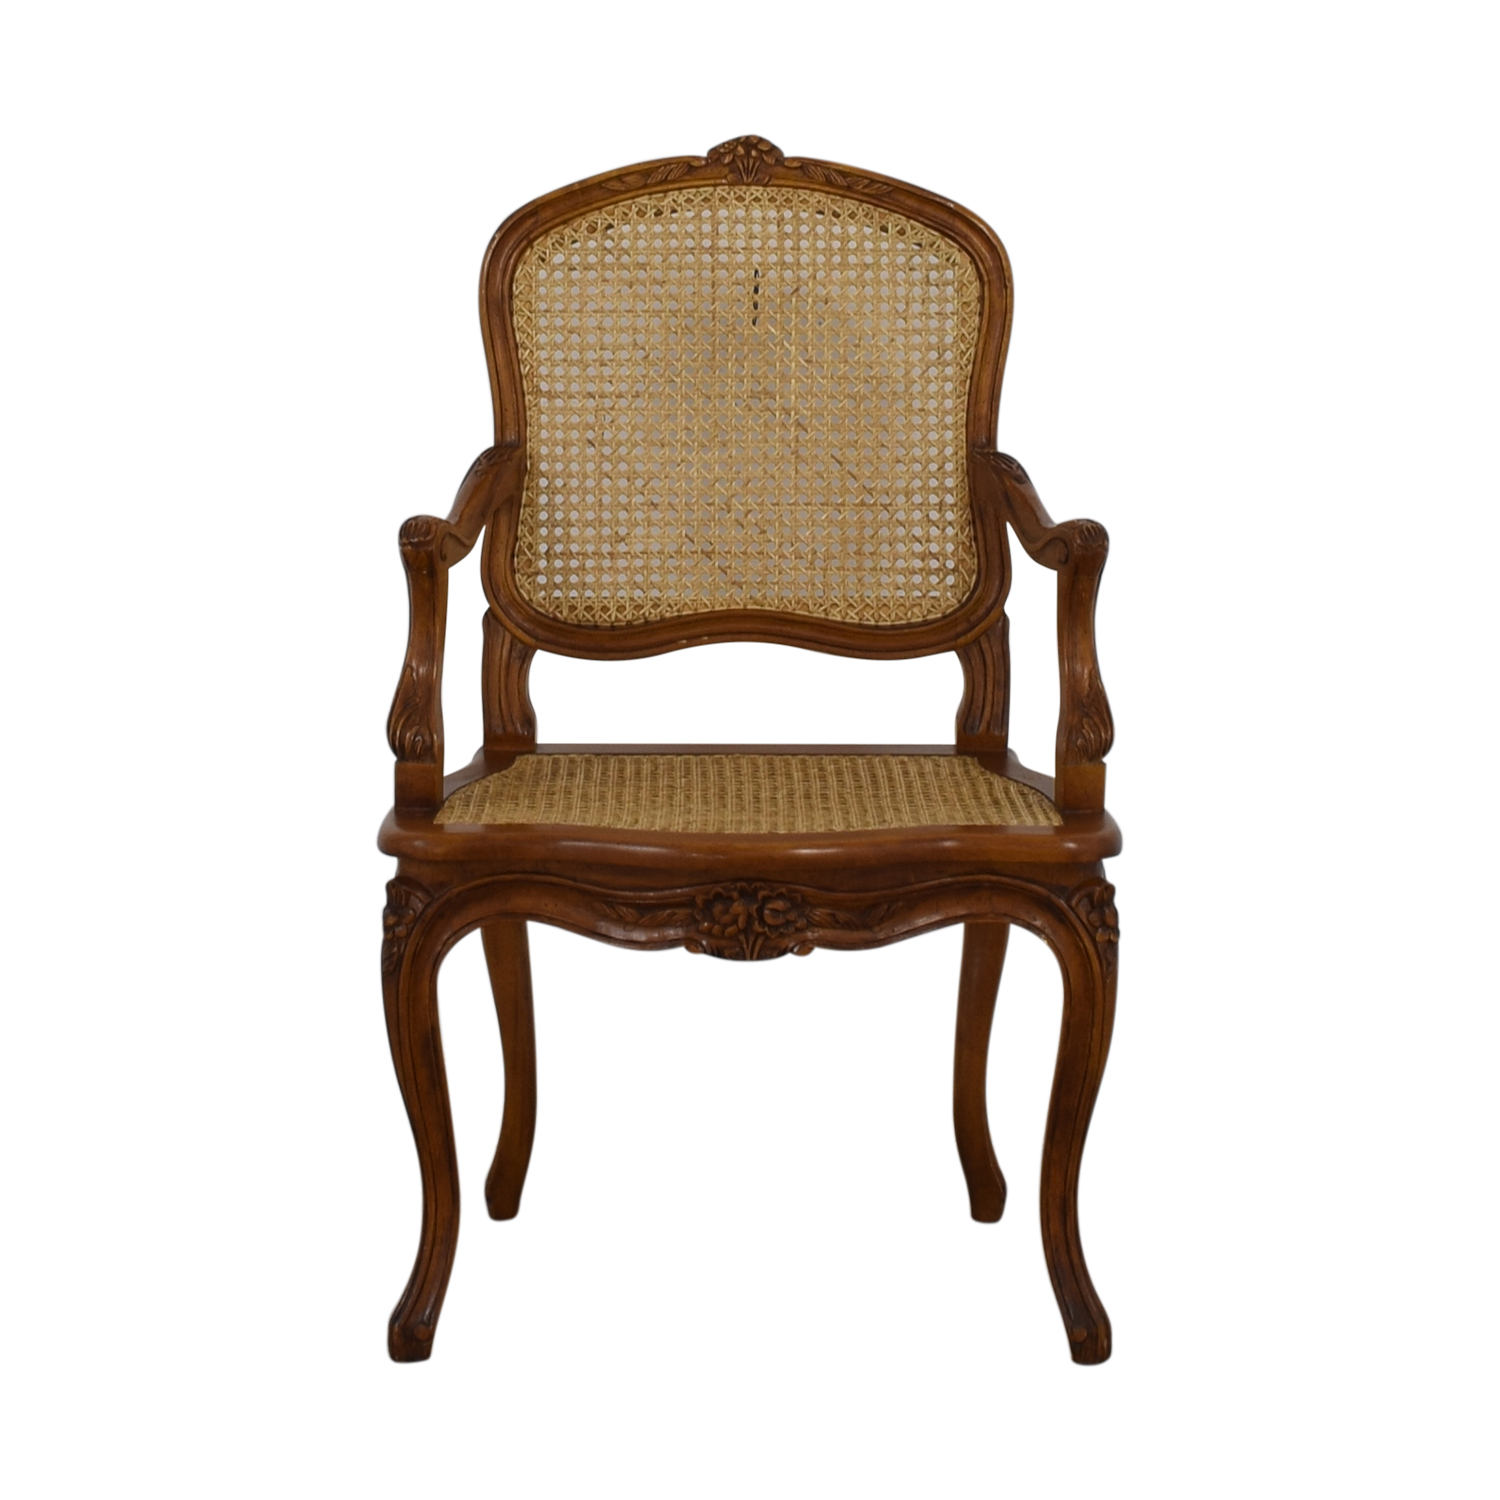 French Wood Cane Accent Chair